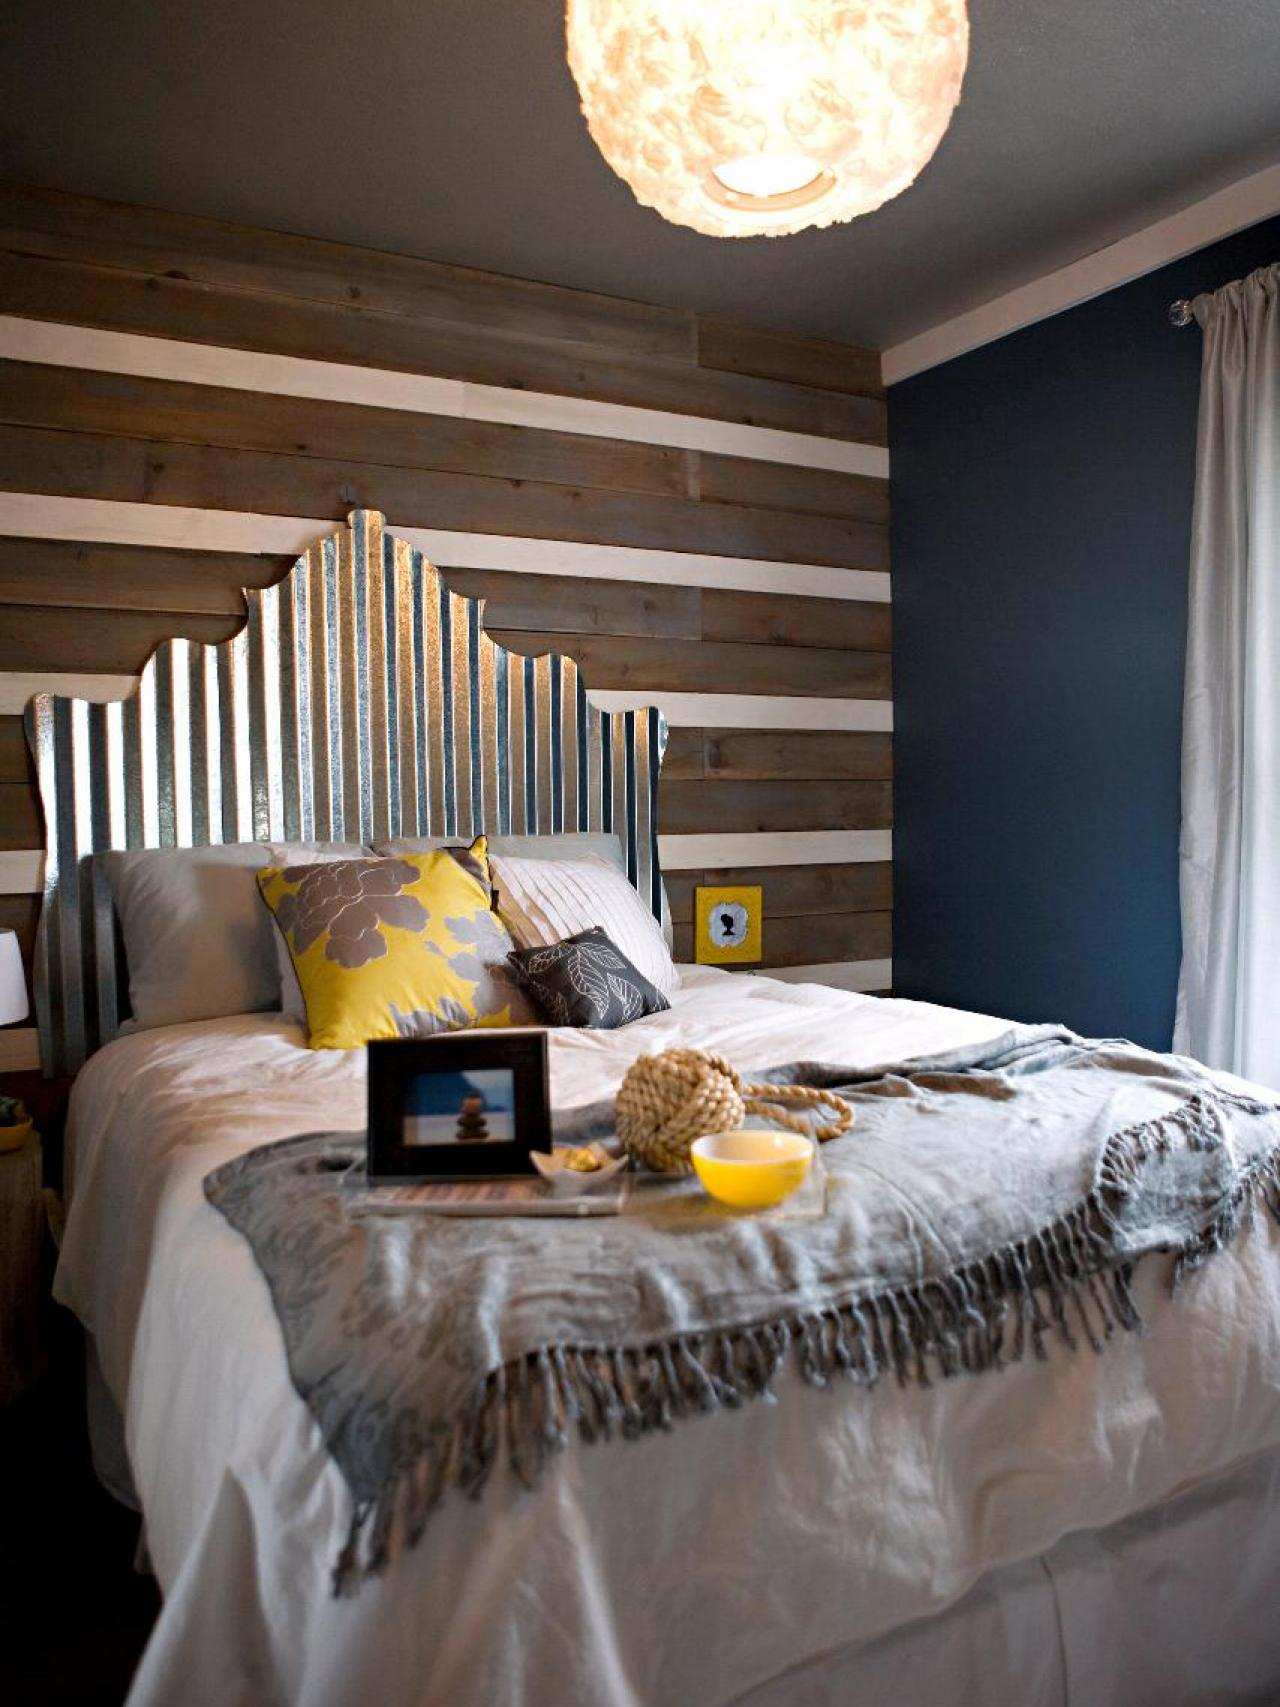 Creative upcycled headboard ideas bedrooms bedroom Bed headboard design